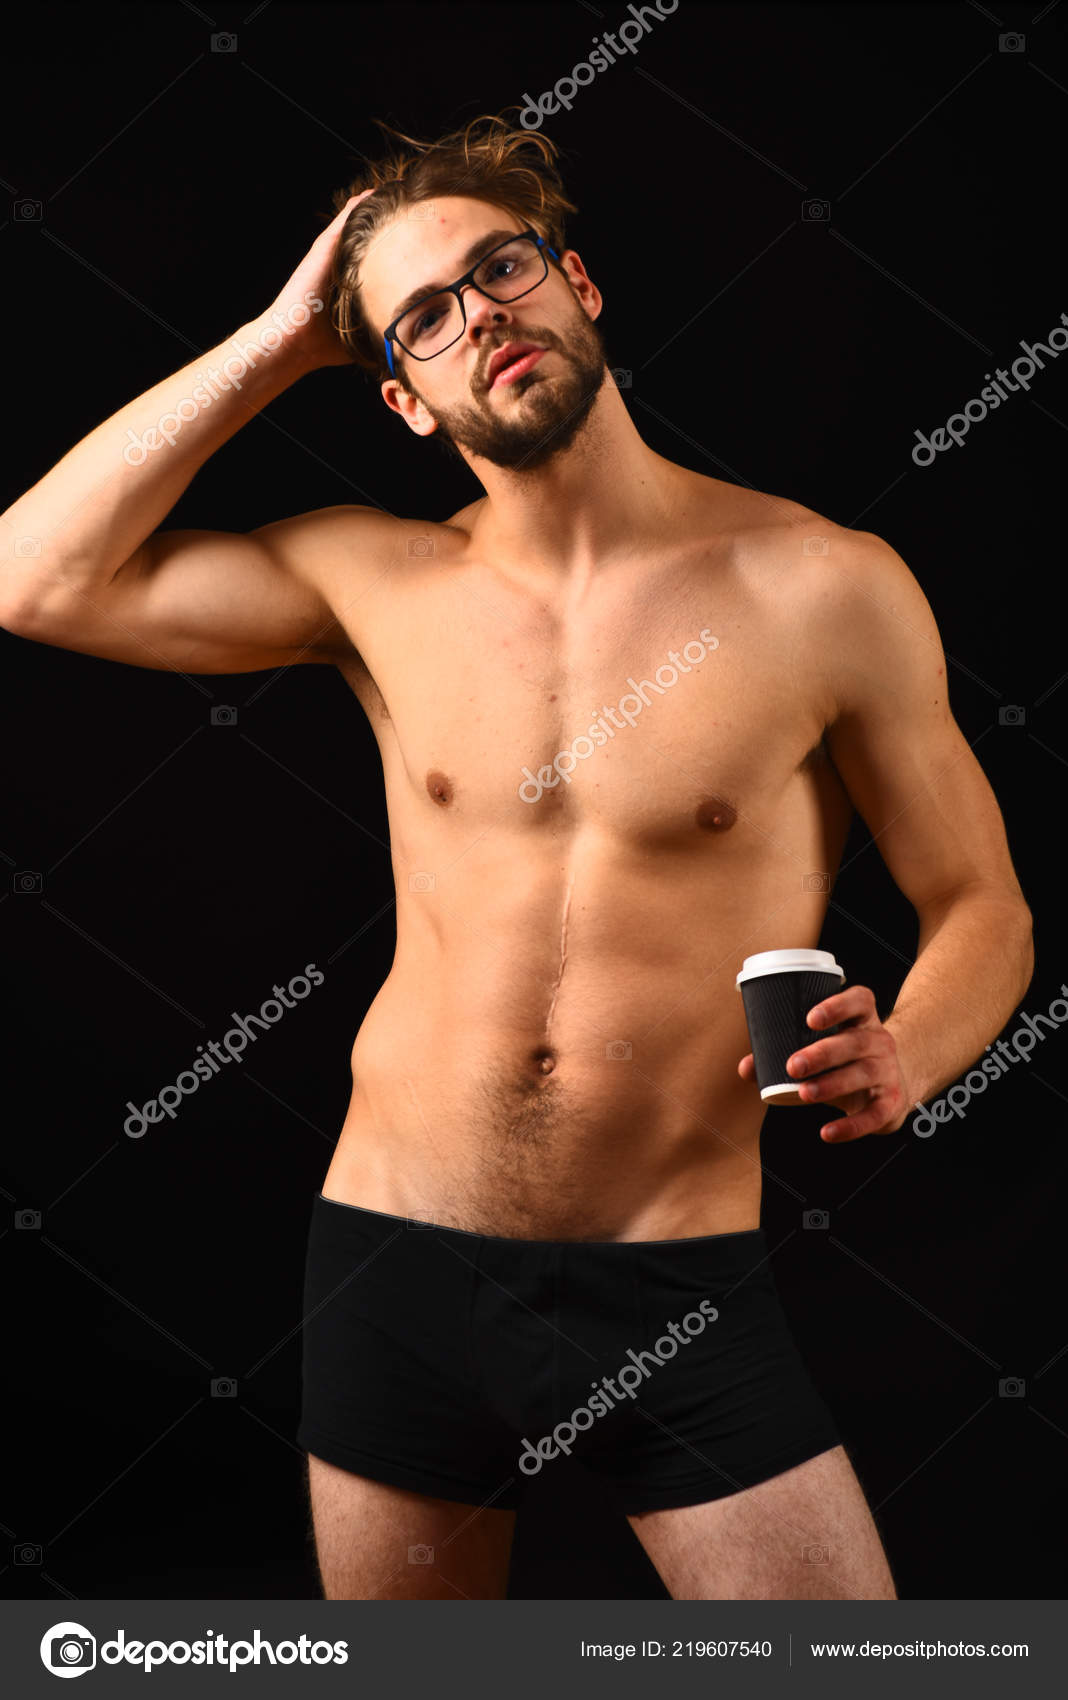 Macho attractive nude guy hold hot coffee. Bring her morning pleasure. Man  smart and sexy with beard and tousled hair wears eyeglasses.